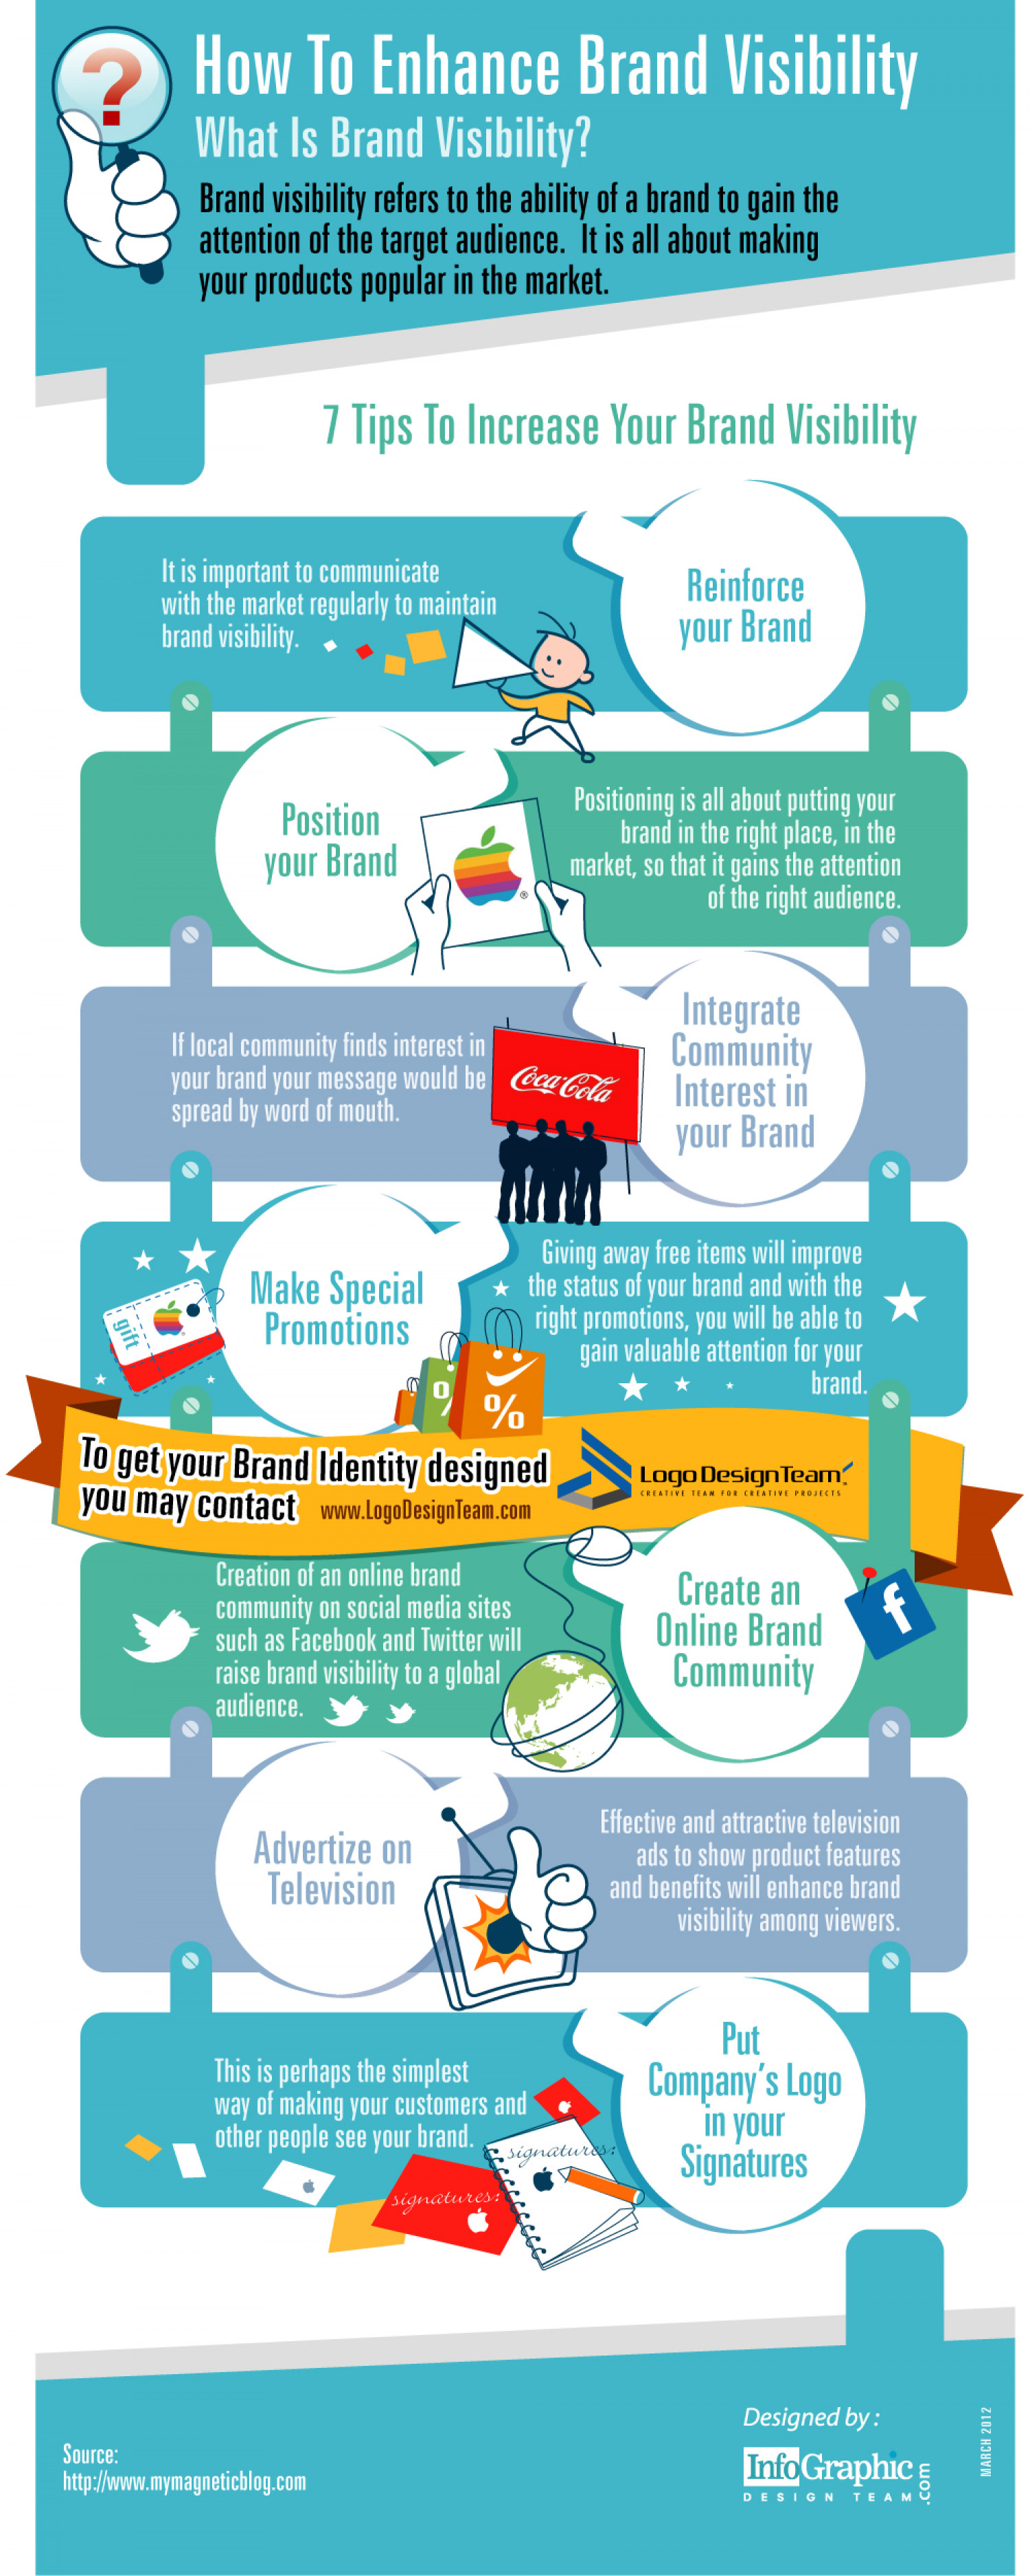 How To Enhance Brand Visibility Infographic